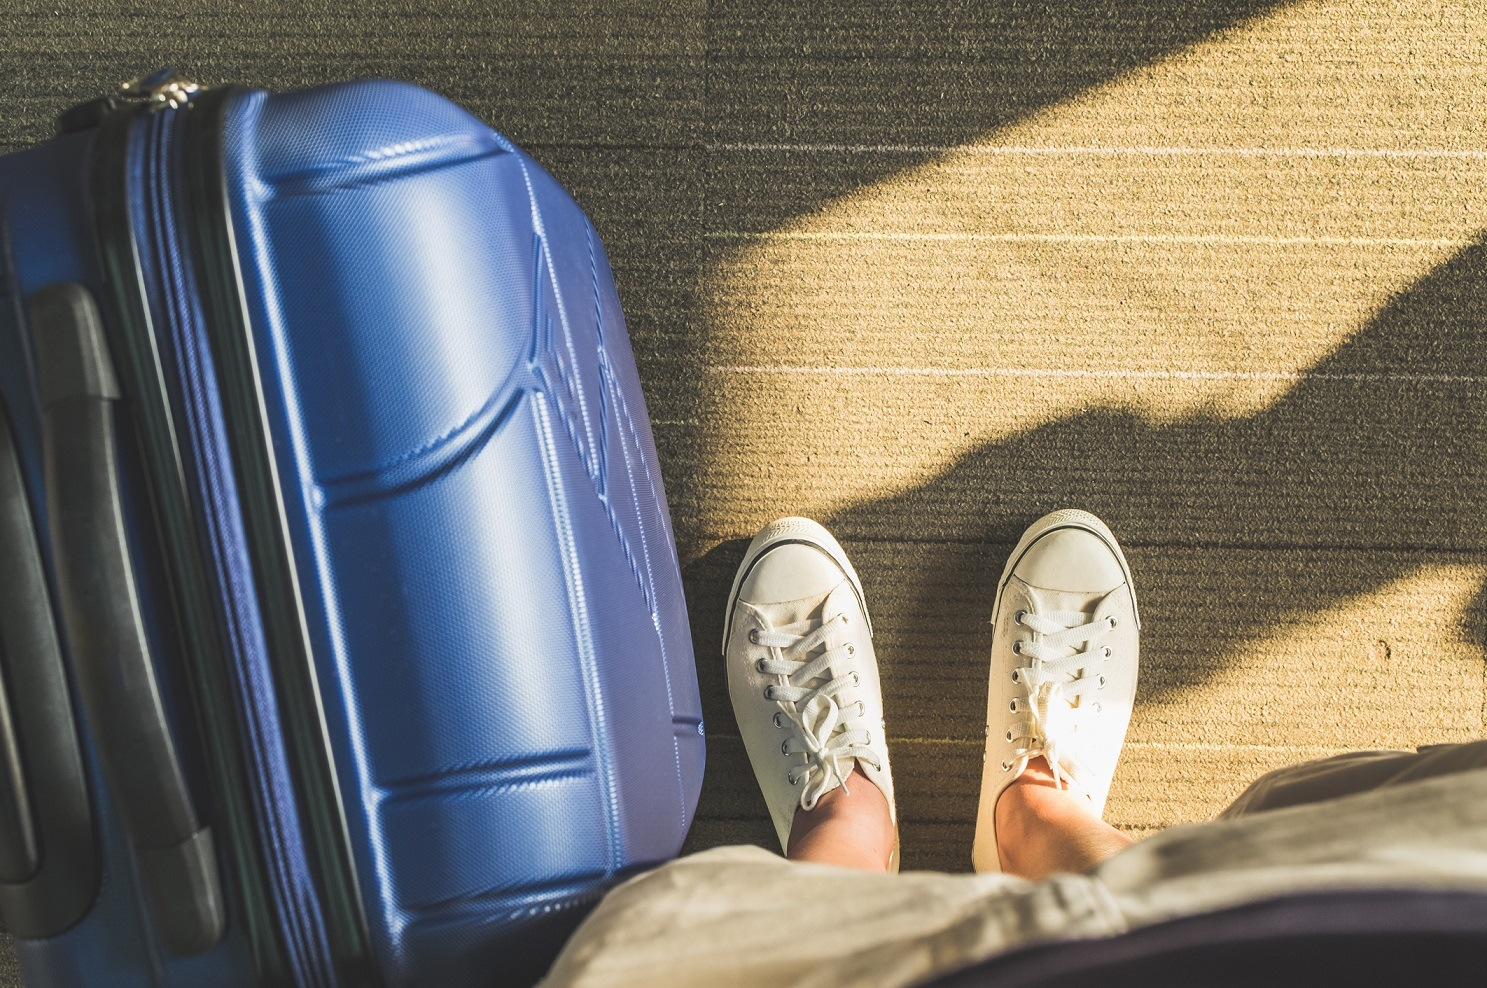 Aerial view,Looking down at white sneaker and travel suitcase with morning sunlight through window at airport terminal,Vacation concept